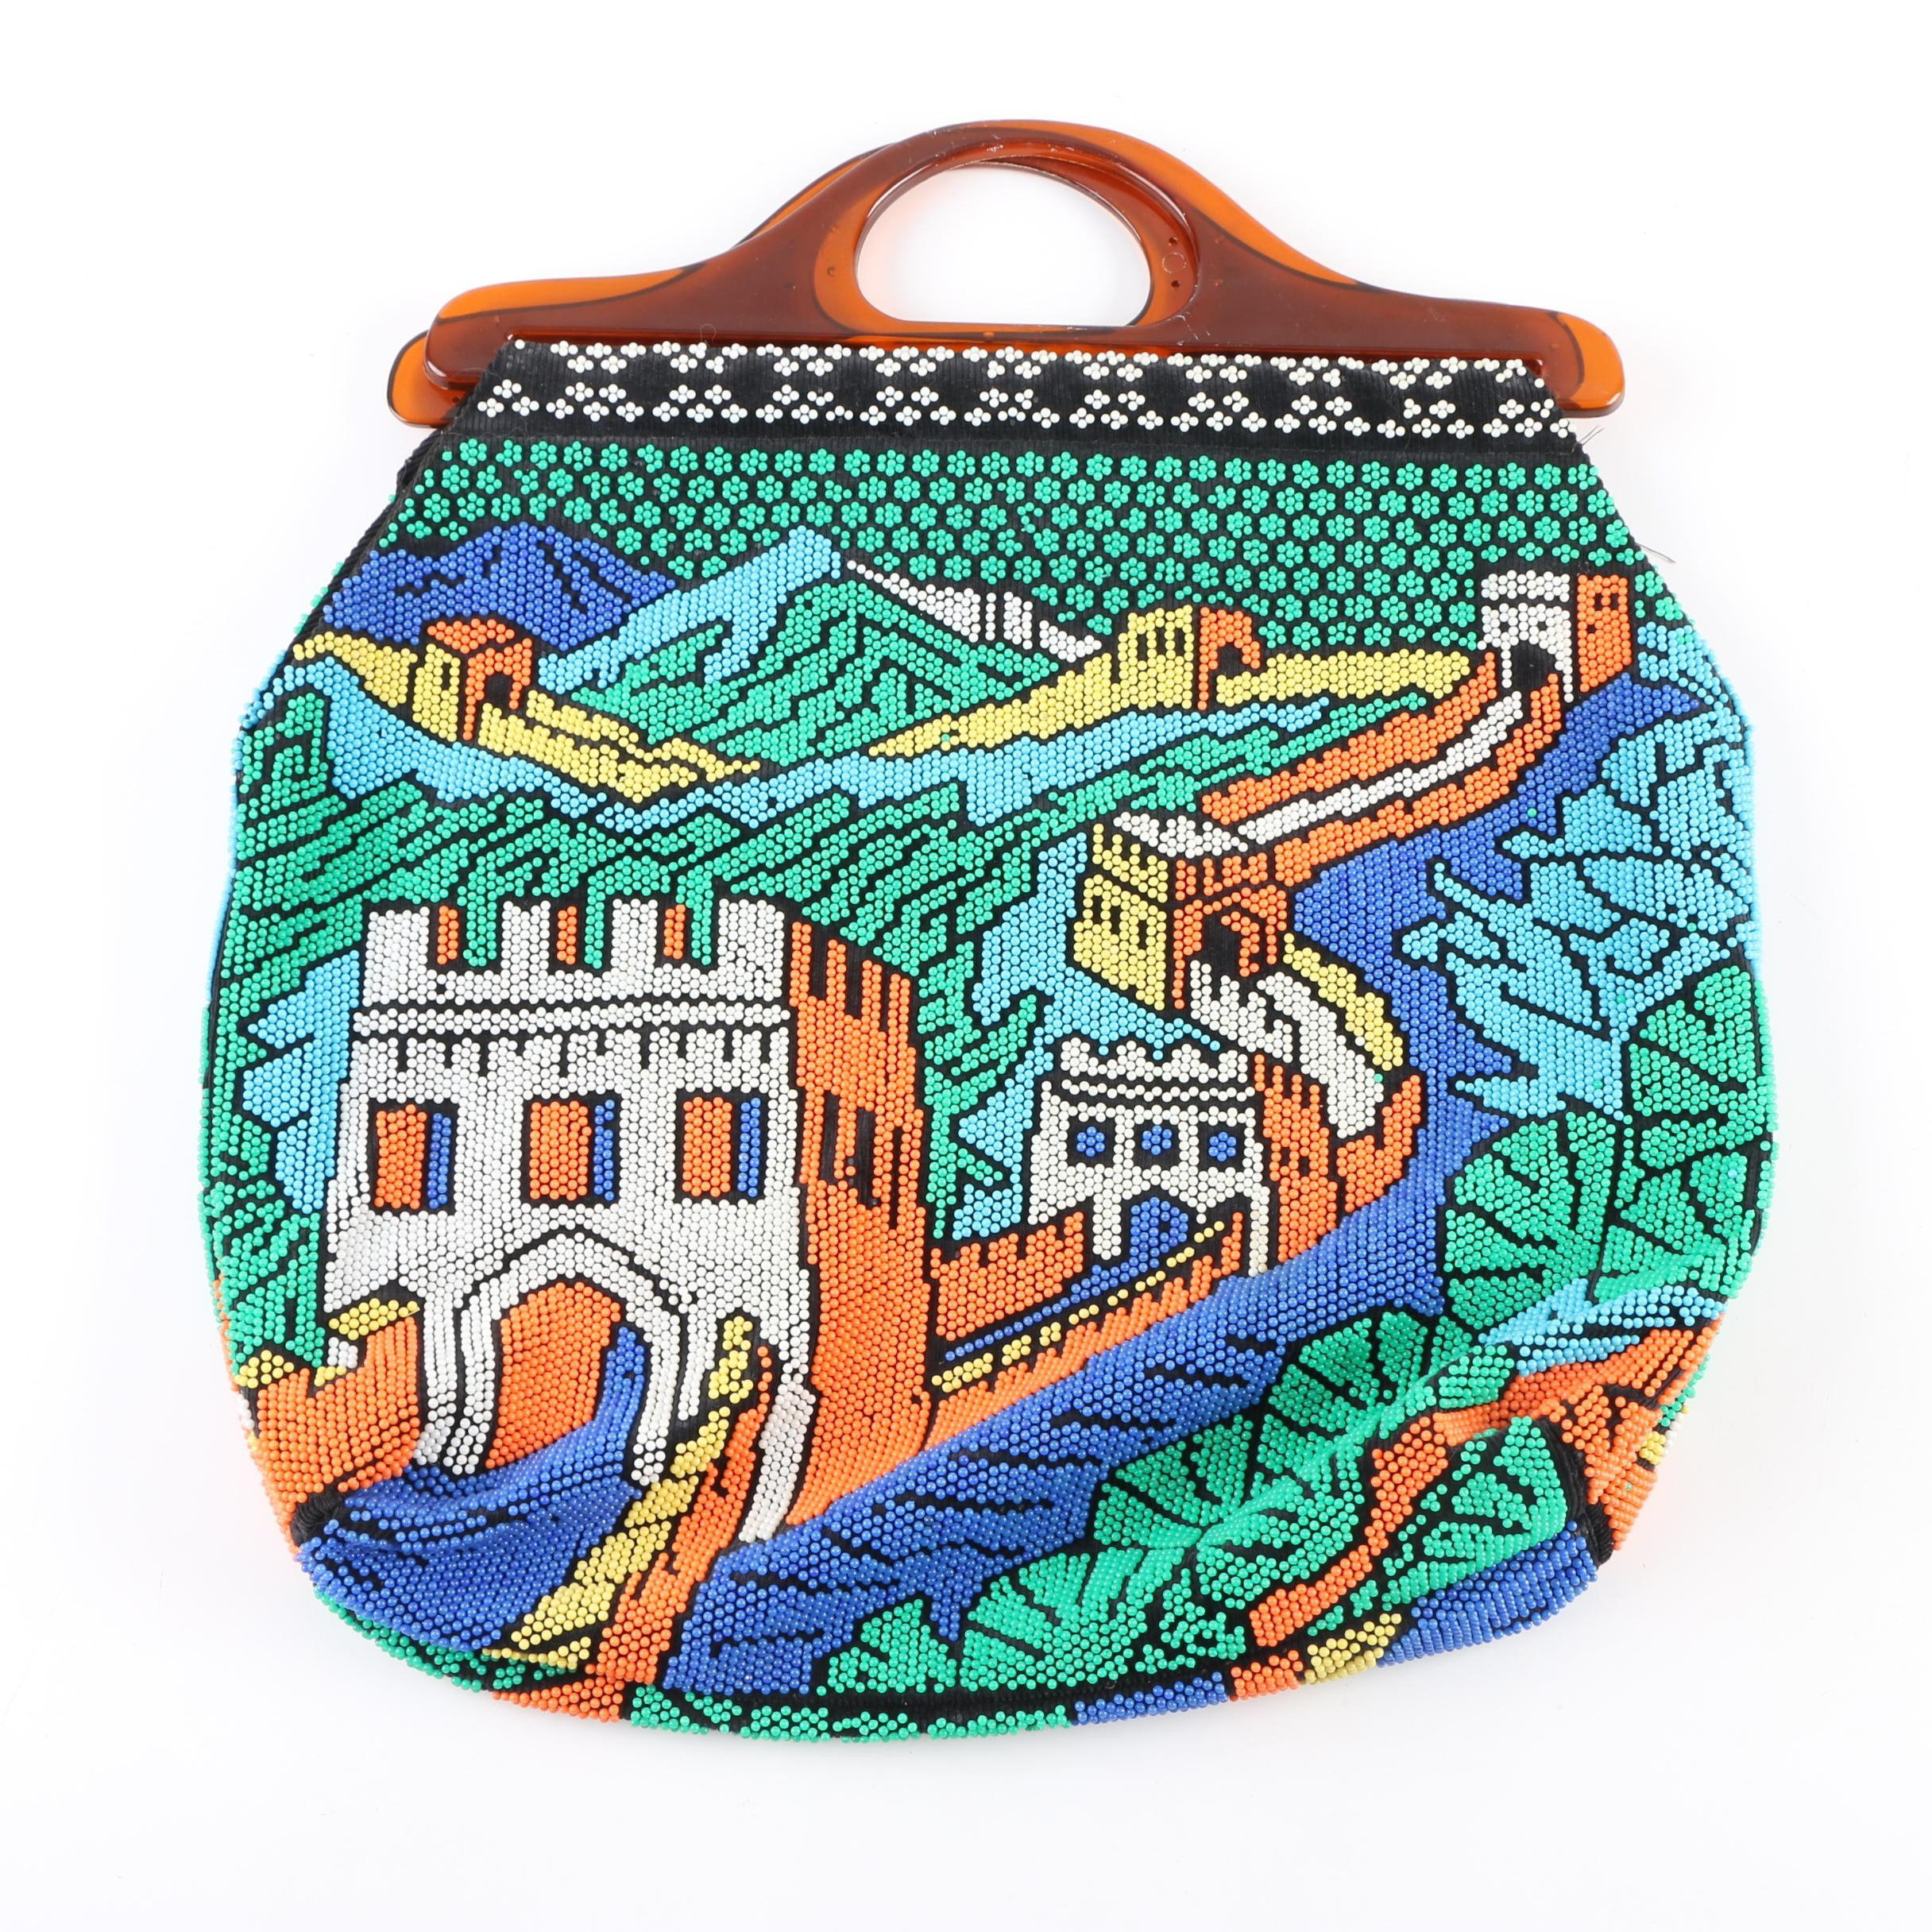 Vintage Great Wall of China Colorful Beaded Handbag